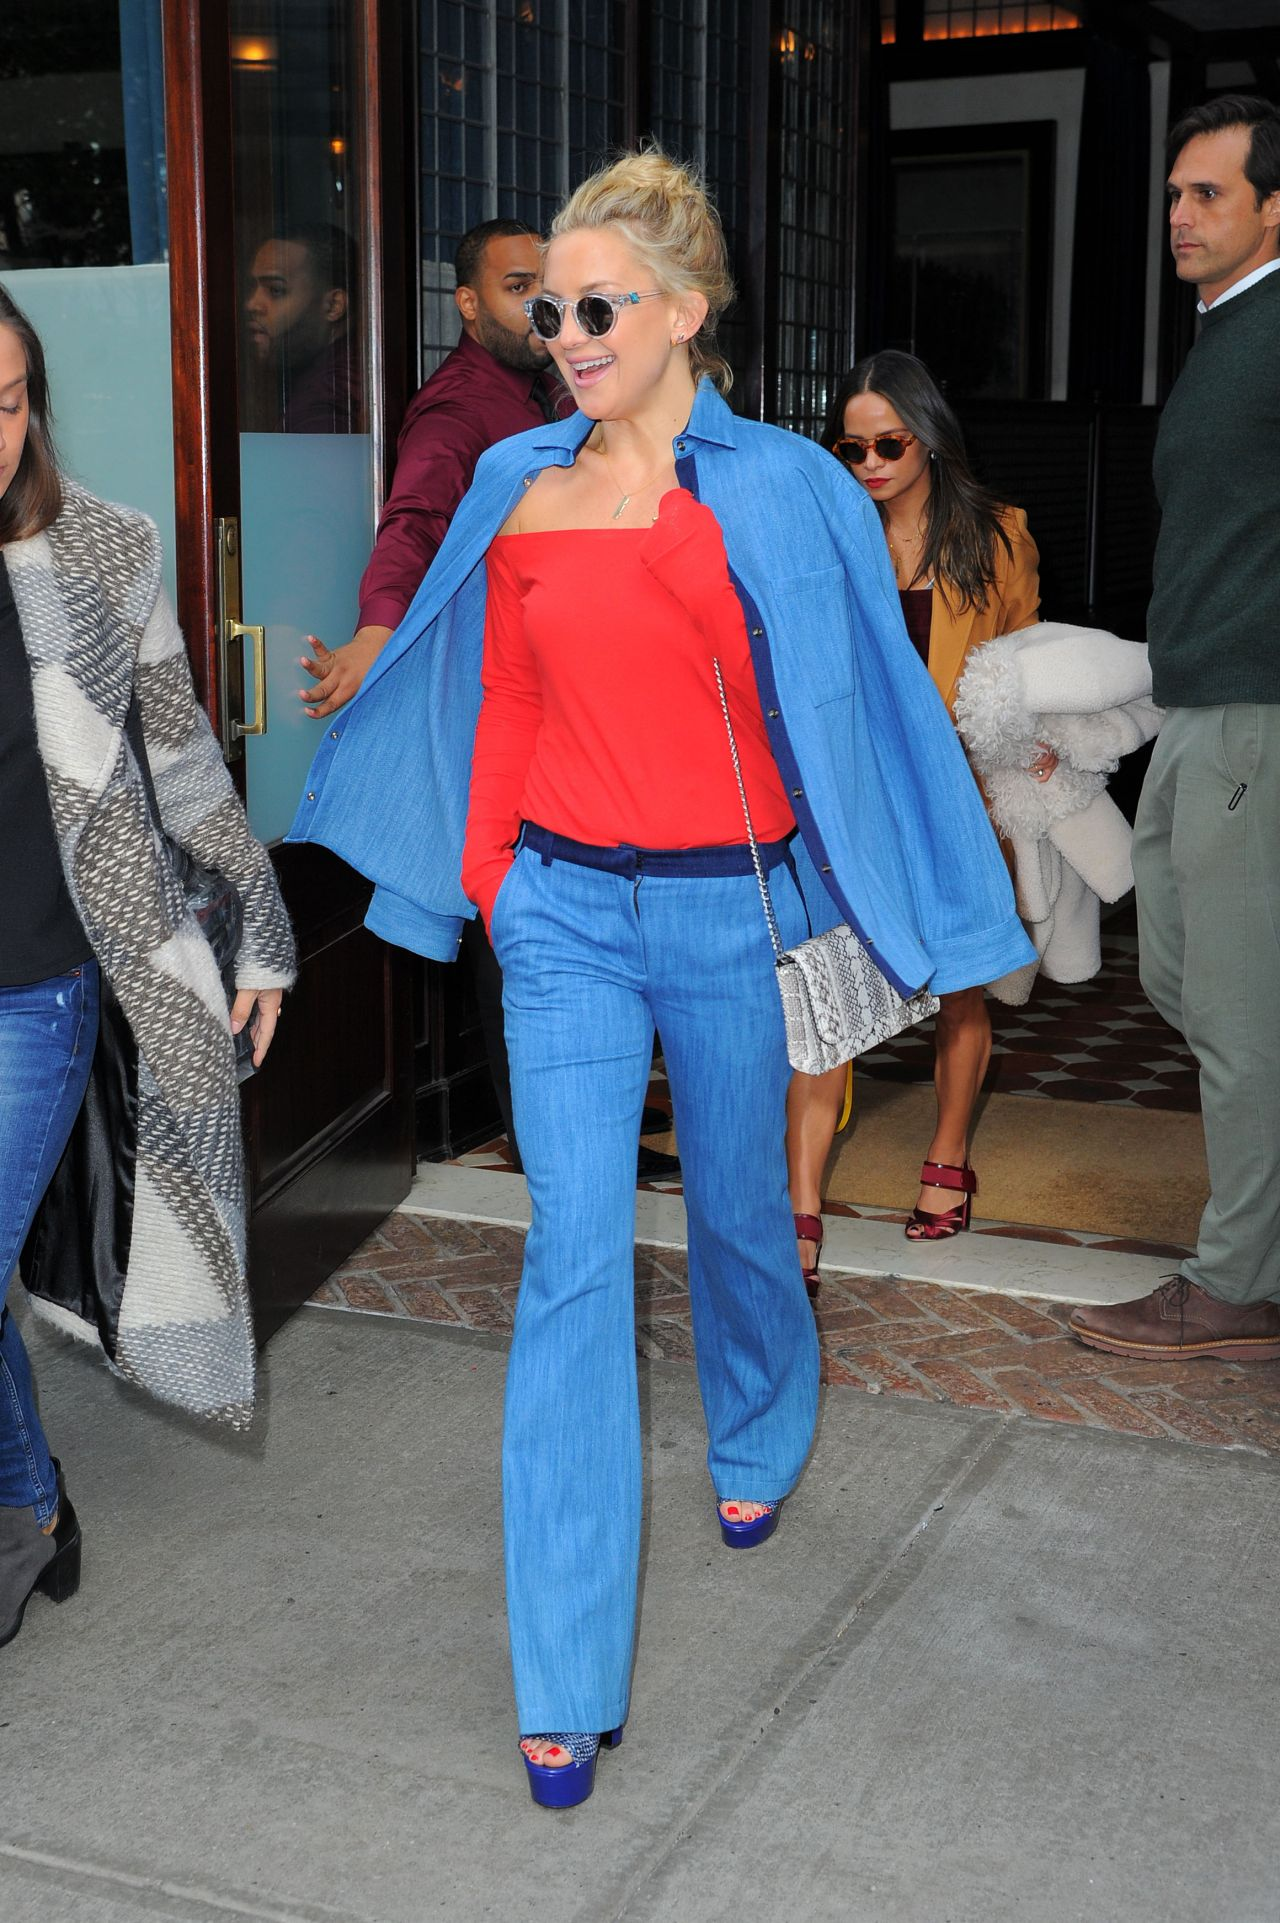 kate-hudson-style-leaving-her-hotel-in-nyc-october-2015_4